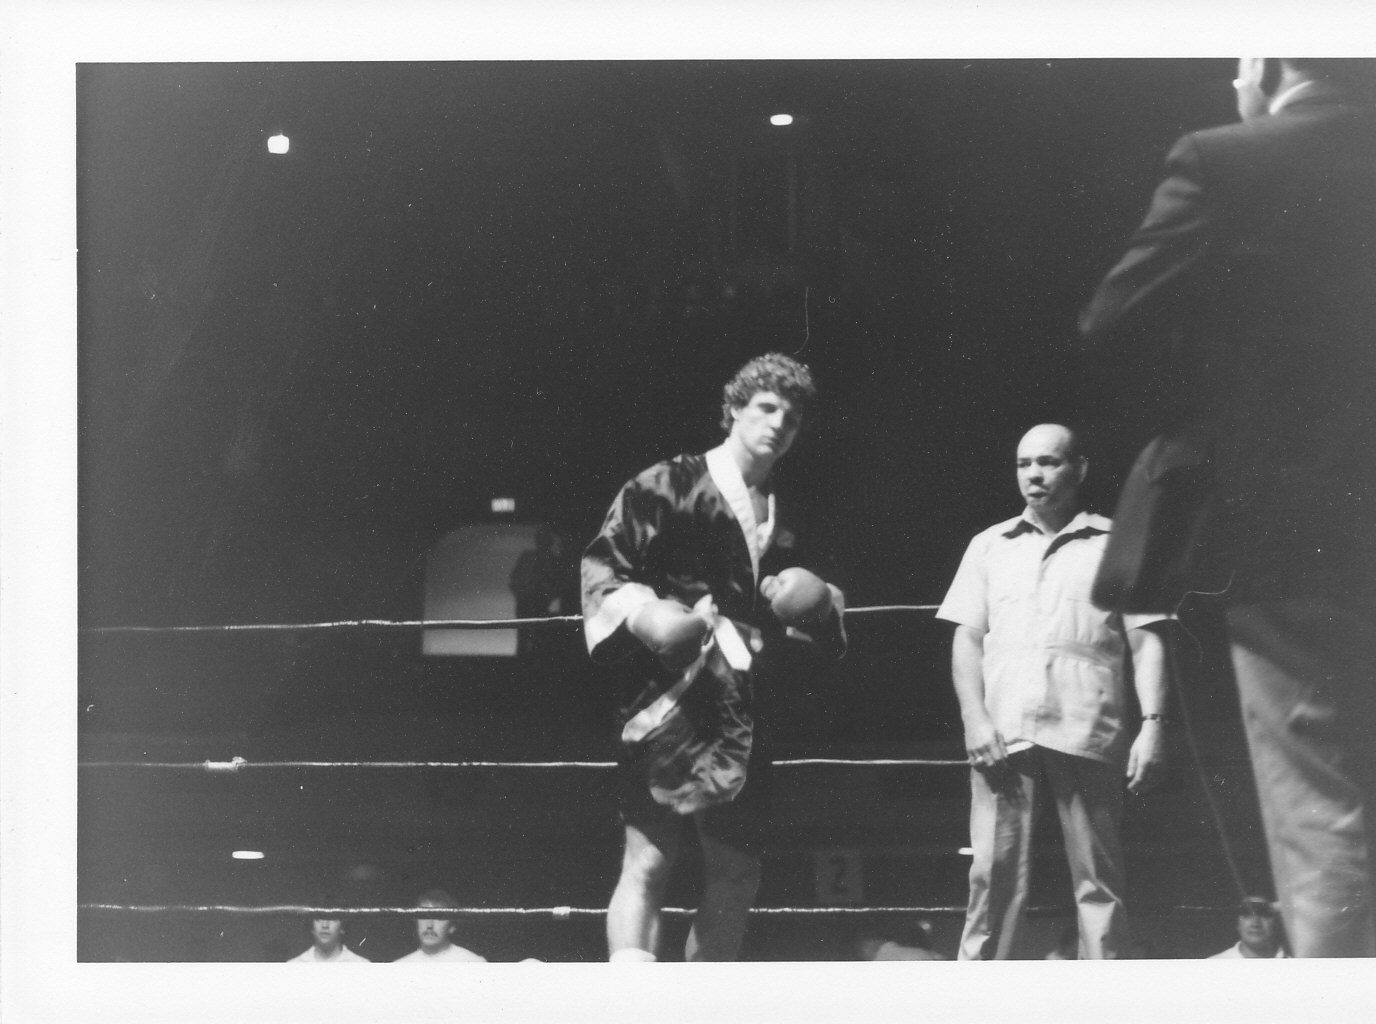 Boxing Articles Archives - Page 2 of 12 - Boxing Over Broadway